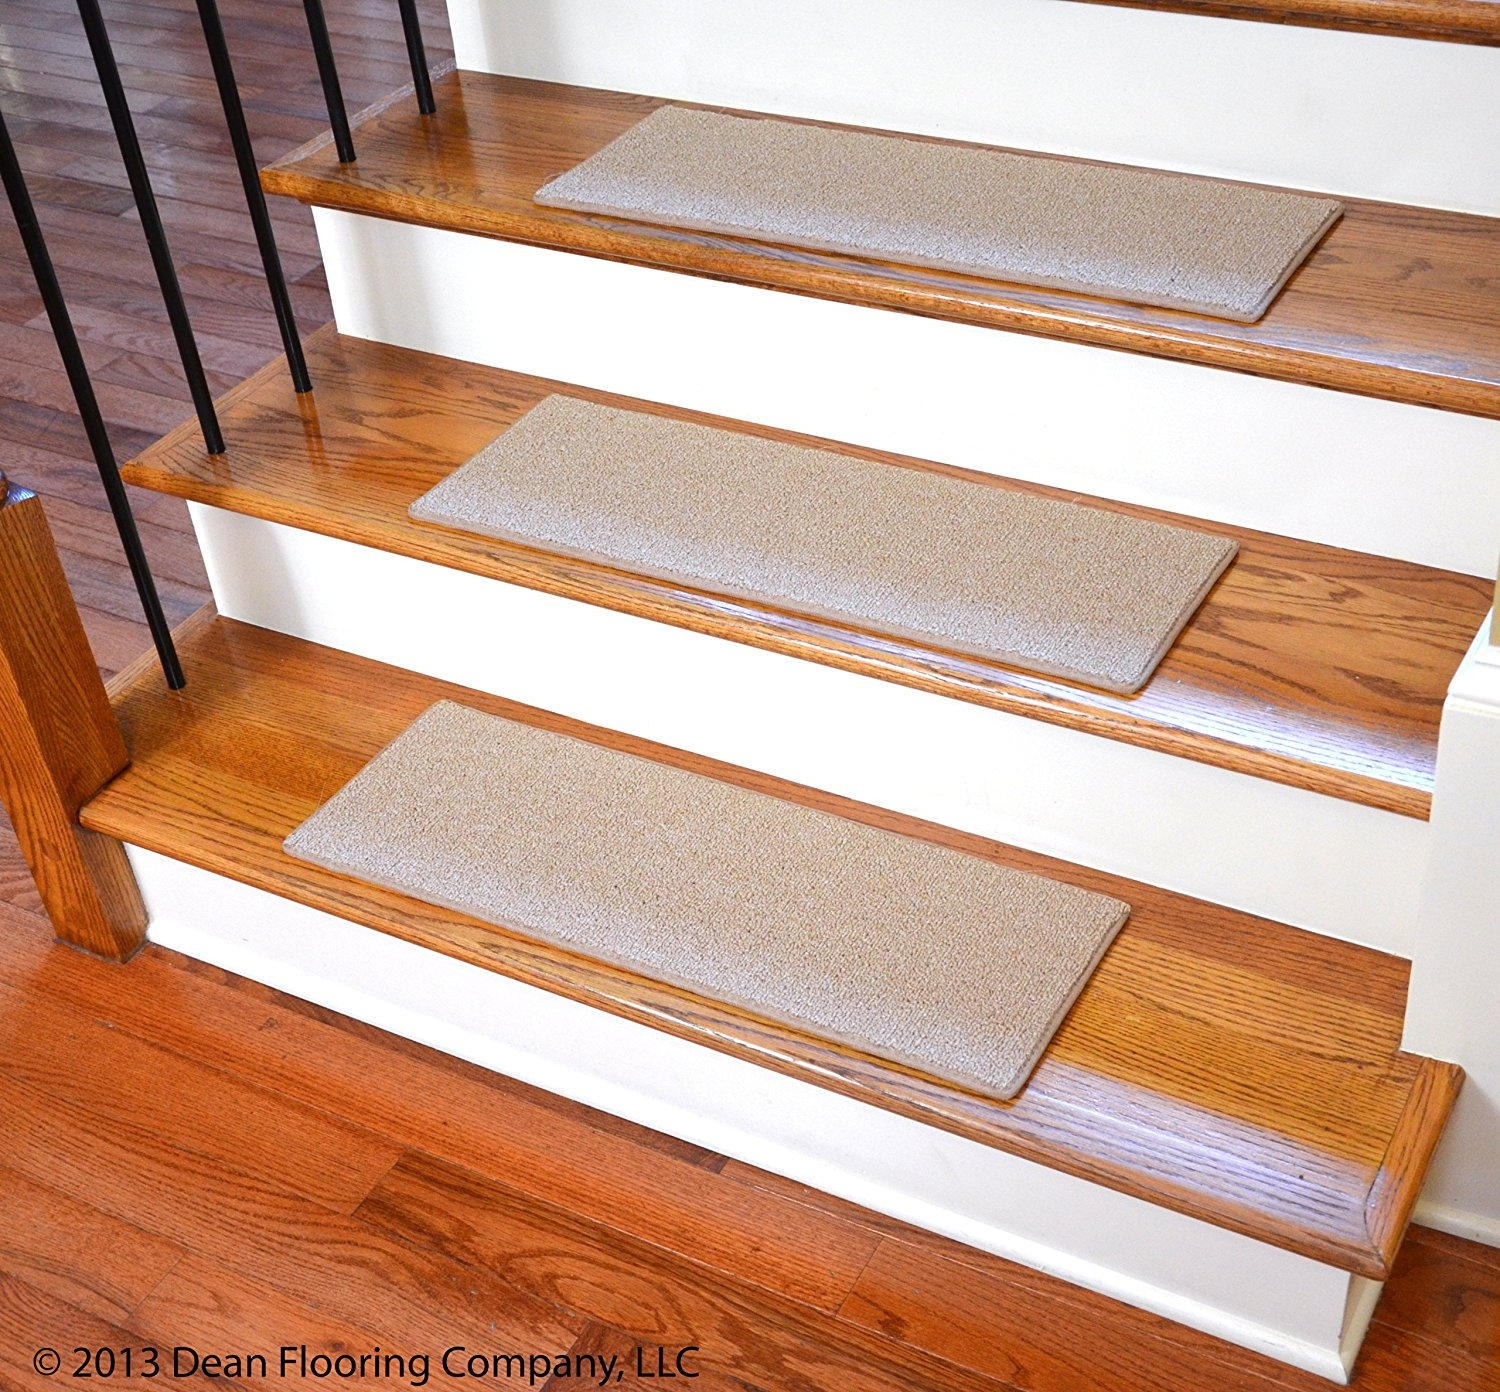 Dean Non Slip Tape Free Pet Friendly Diy Carpet Stair Treadsrugs Inside Stair Treads And Rugs (View 5 of 15)